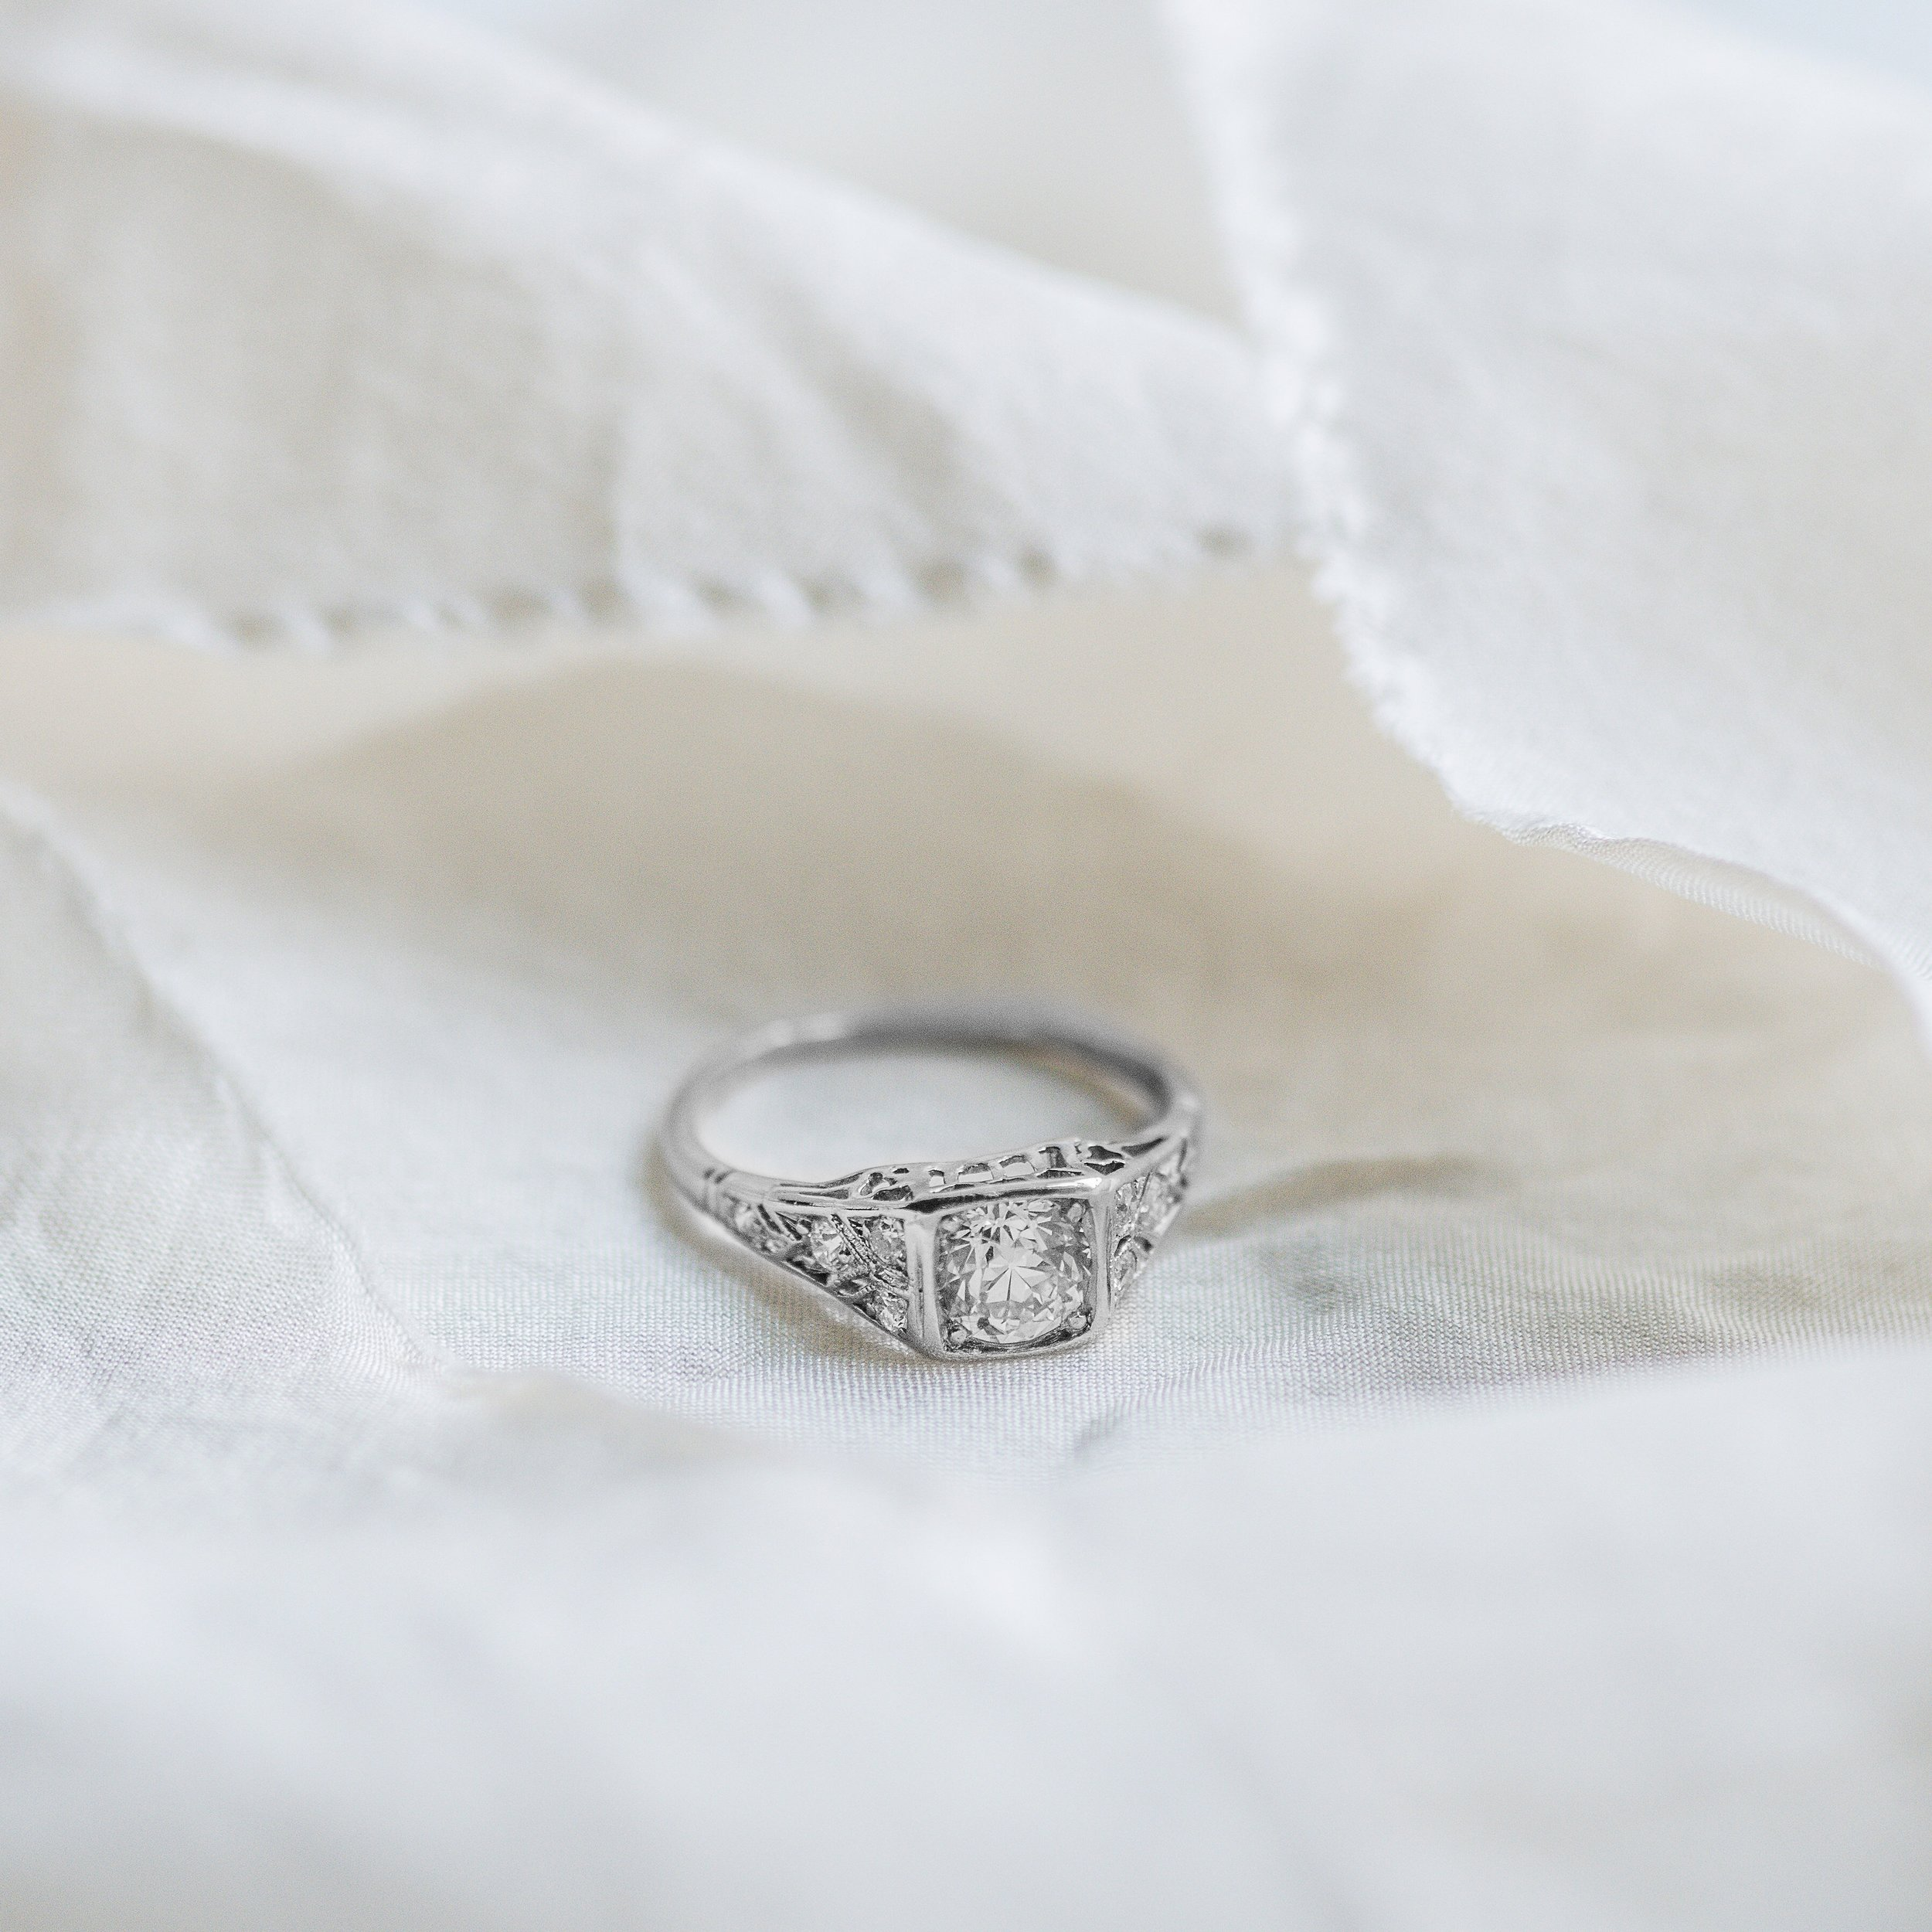 What bridal dreams are made of! Shop this stunning Art Deco 0.70 carat Old European cut diamond and platinum ring  HERE .